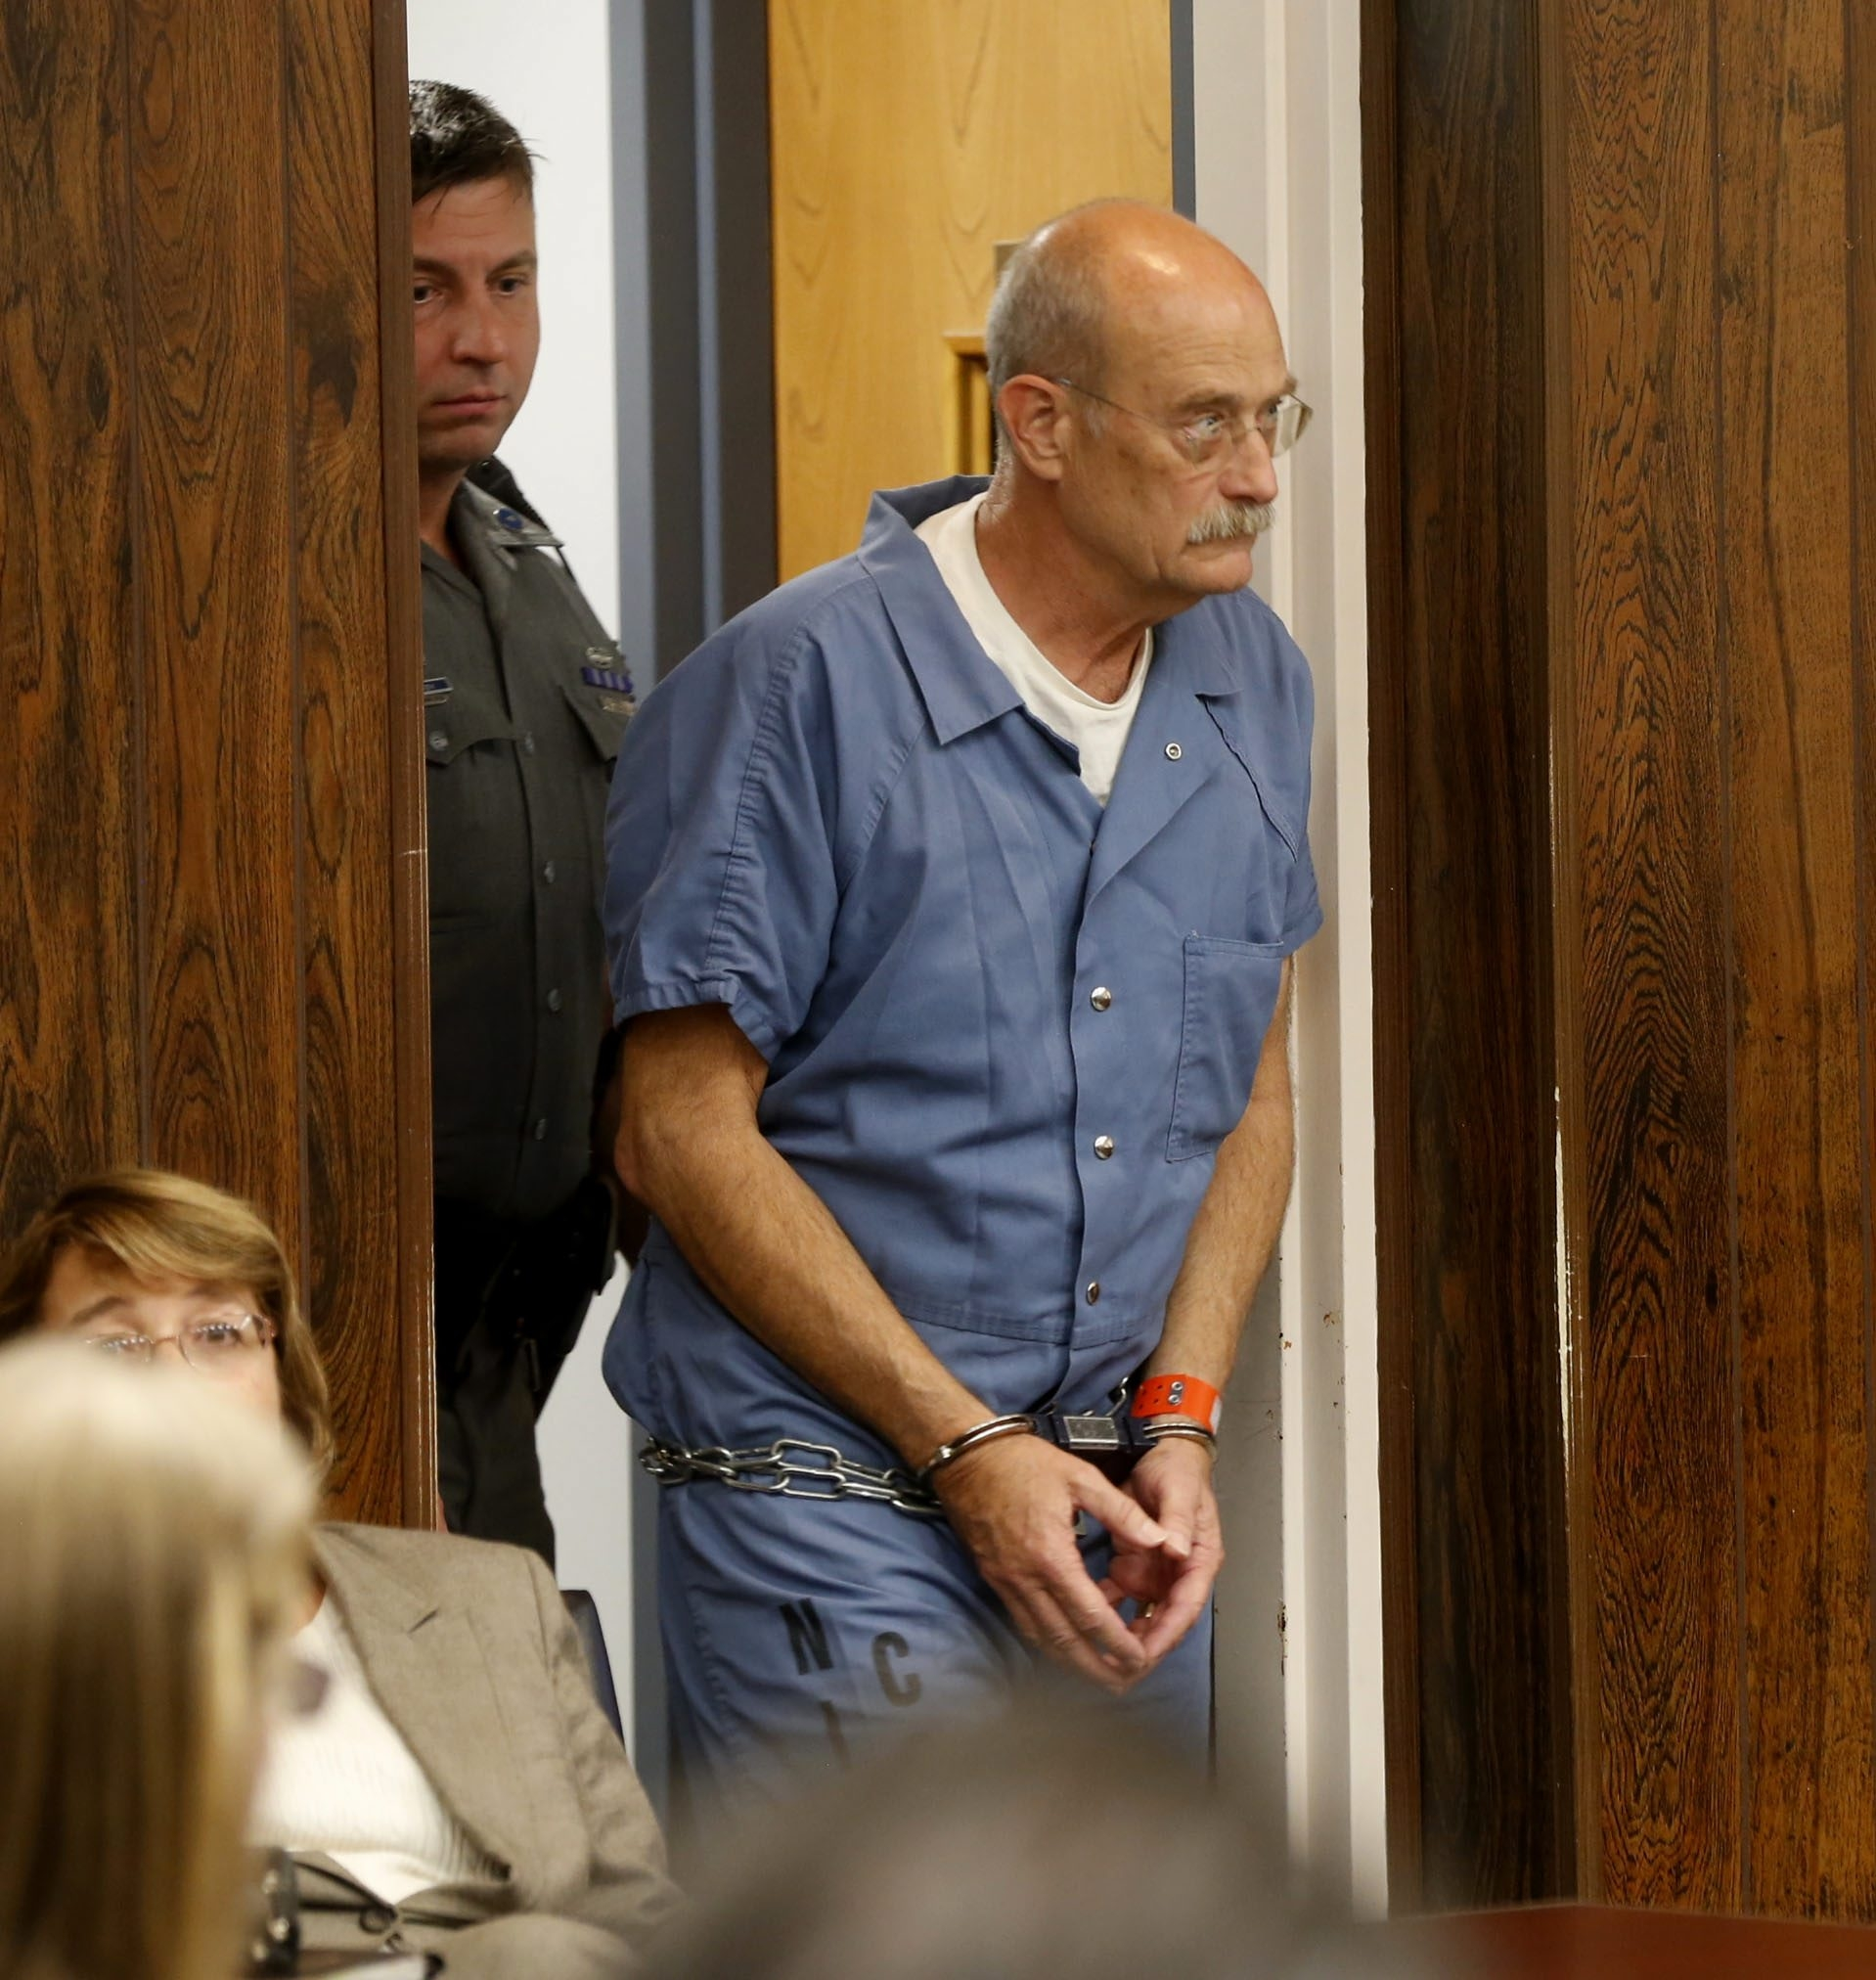 Iver Jay Phallen faces a 209-count indictment charging him with torturing and assaulting three women.